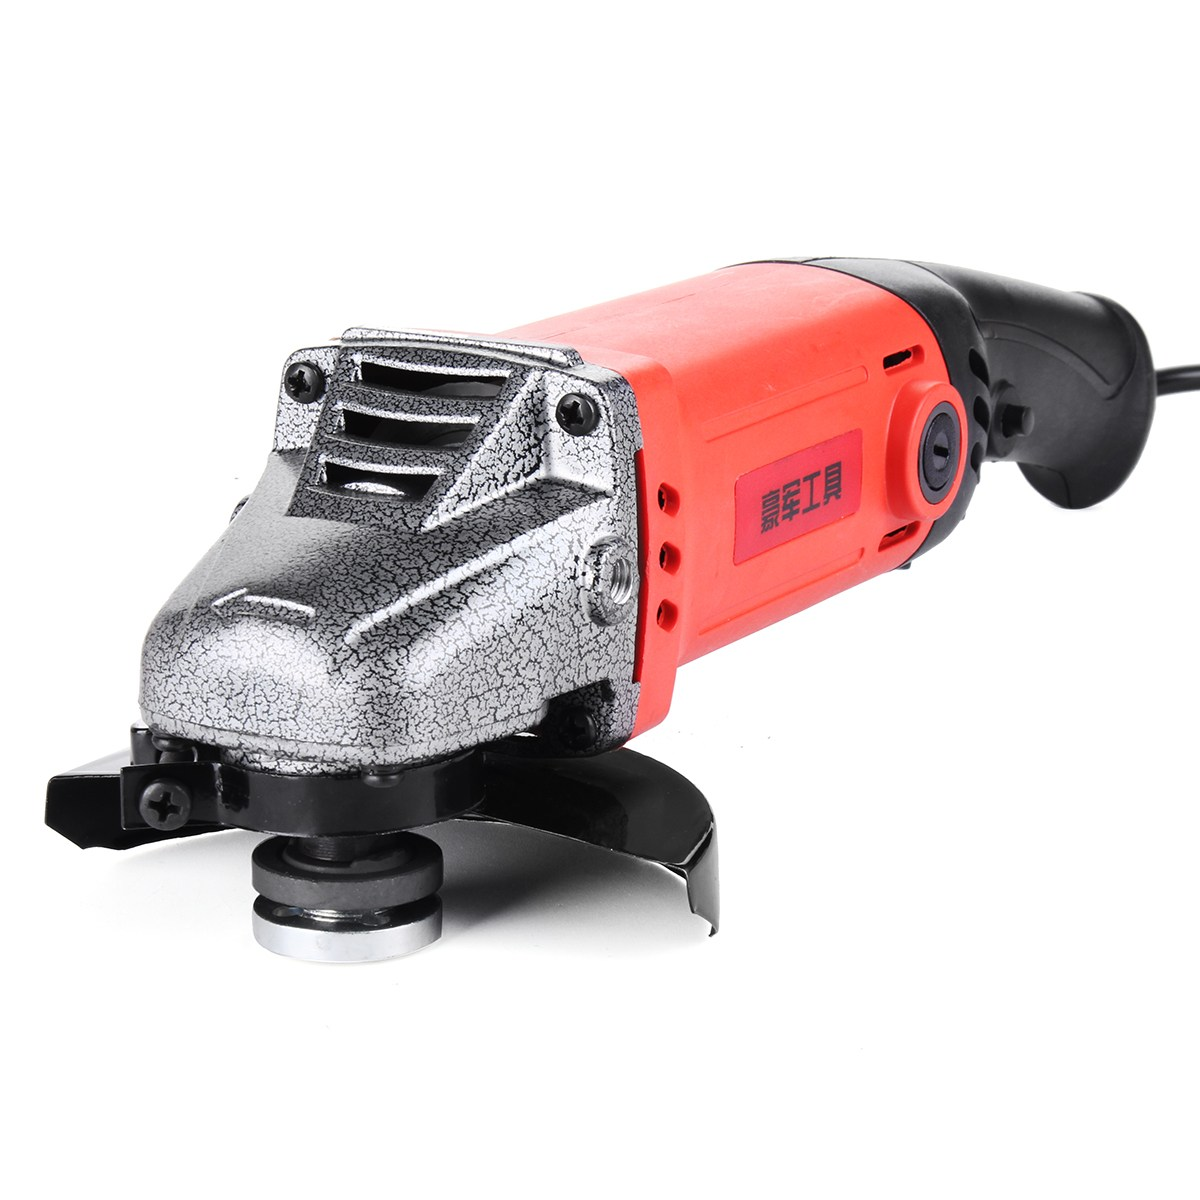 12000rpm 220V 680W 100mm Electric Angle Grinder Spindle M10 Chainsaw Bracket Change Ngle Grinder Metal Cutting Tool Power Tool 15 inches power tool box 100mm angle grinder grinder toolbox plastic box